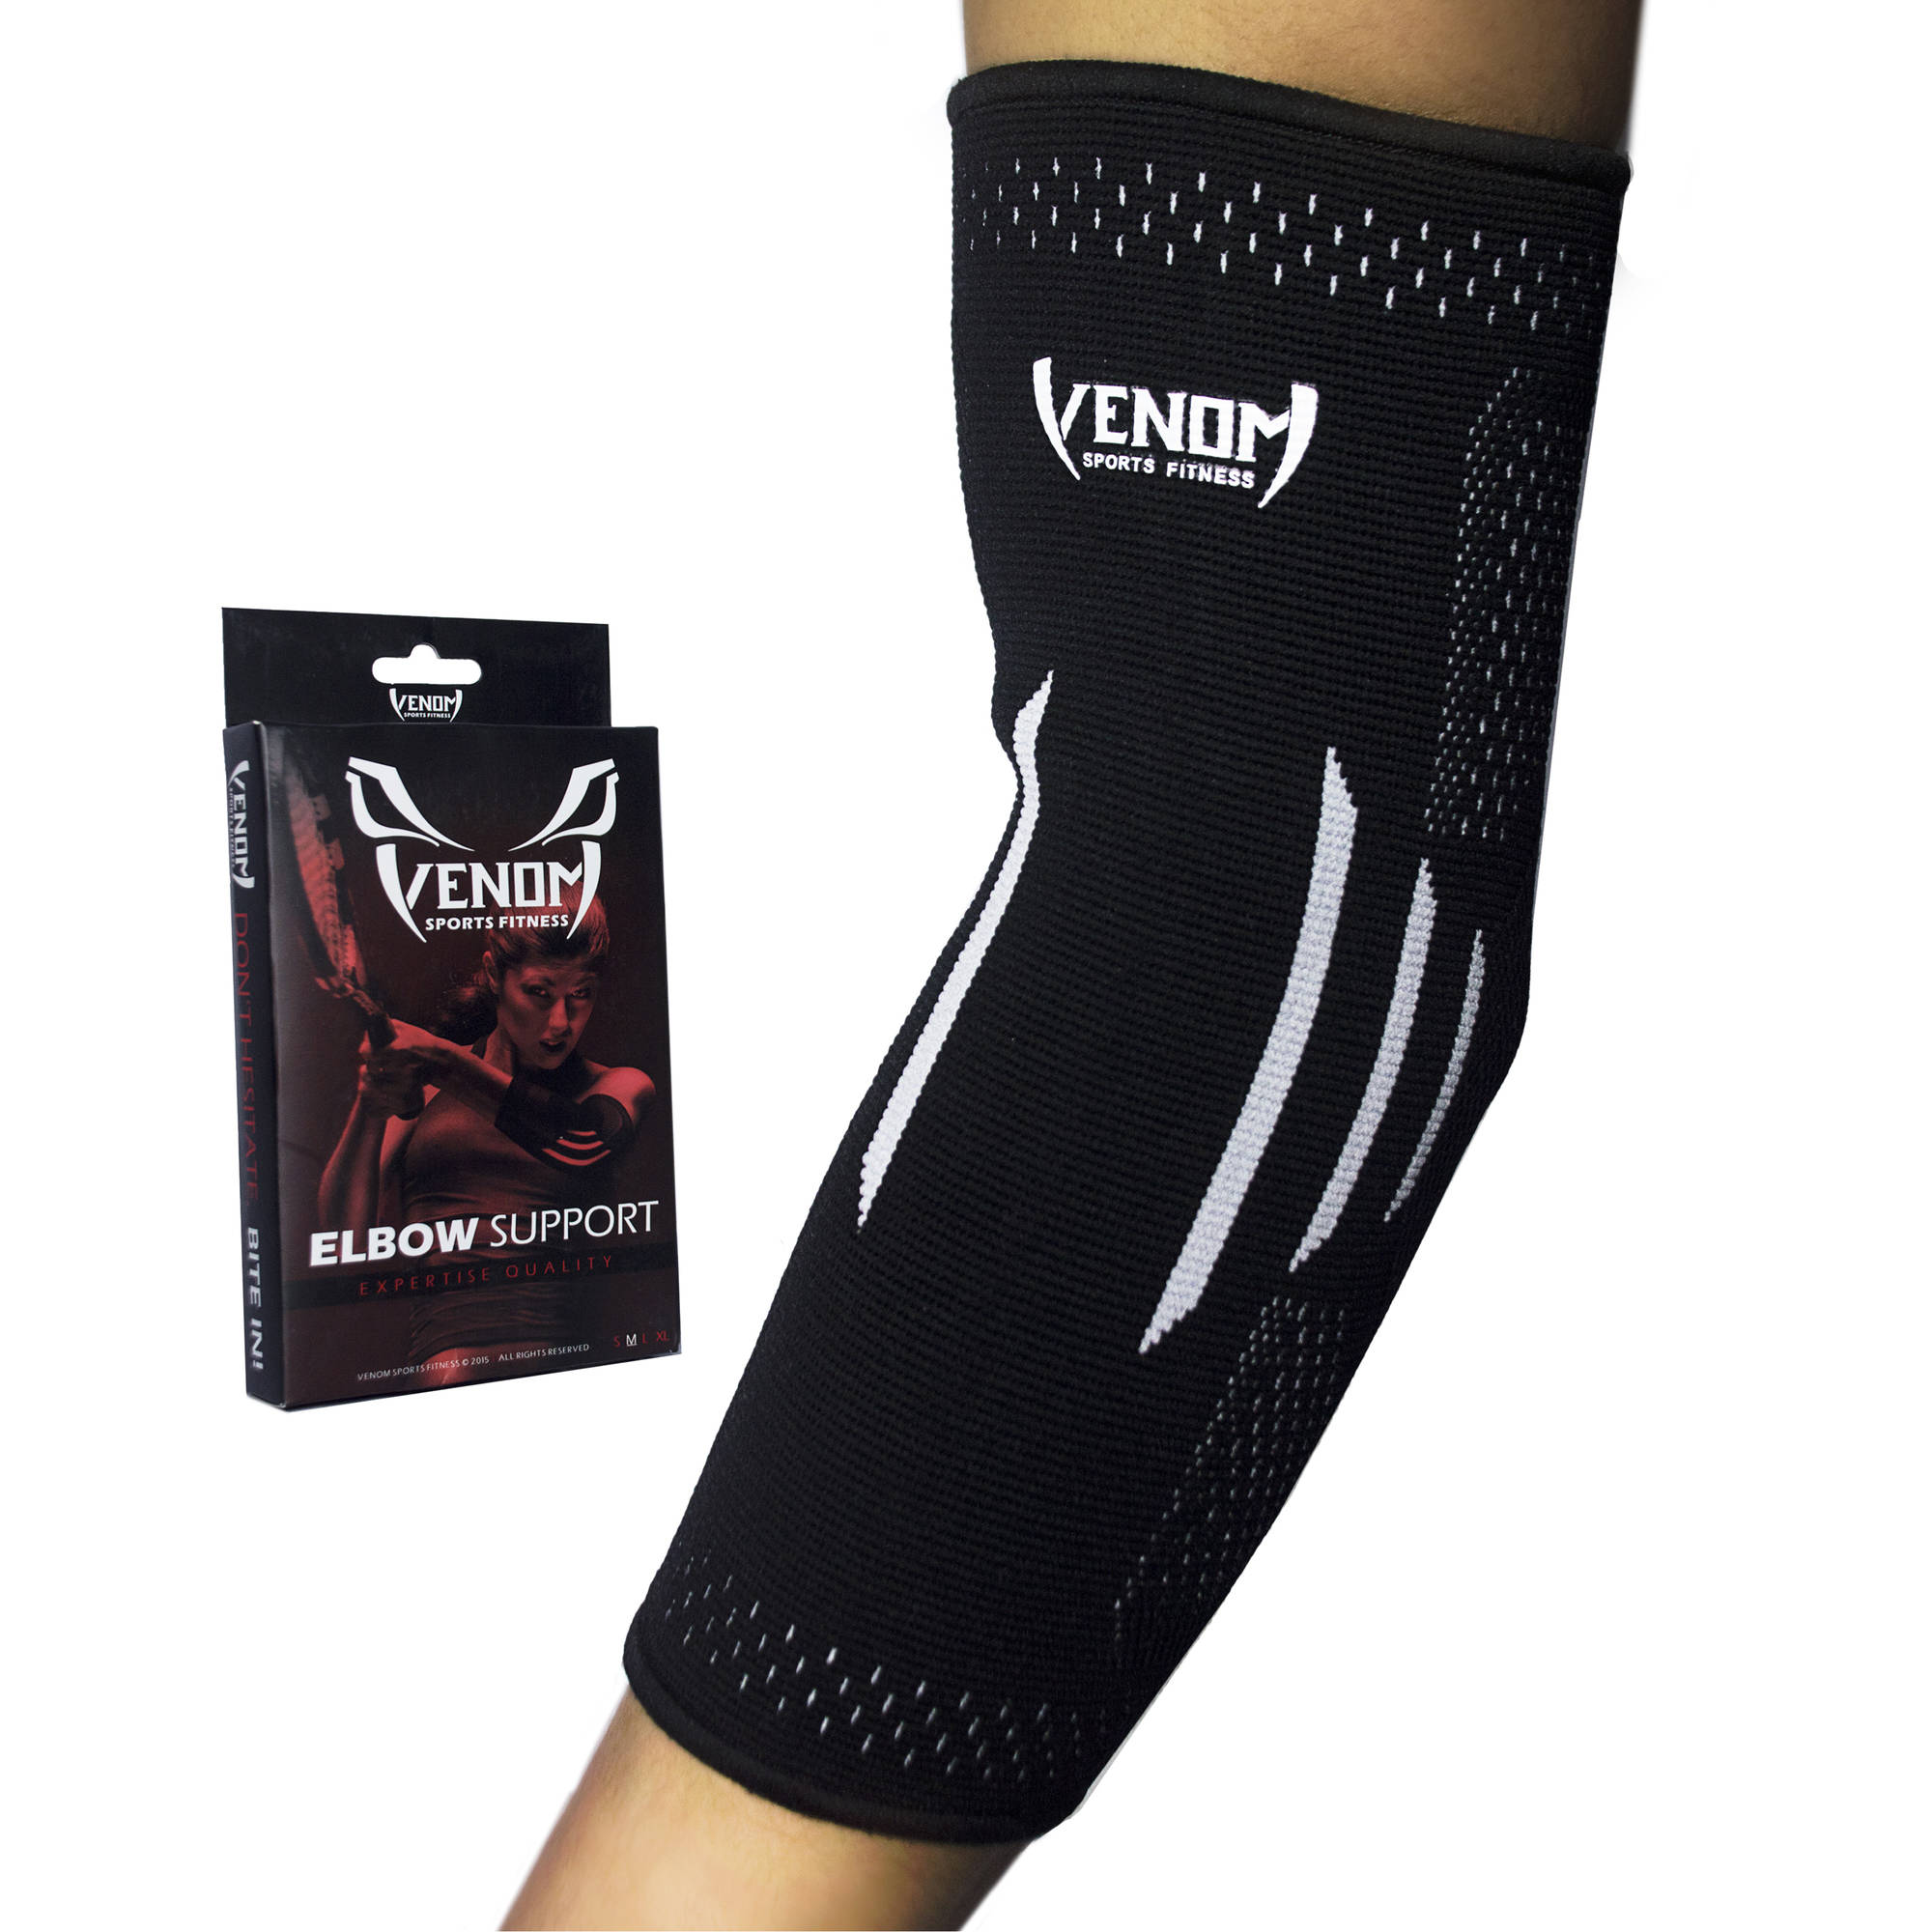 Venom Sports Fitness Elbow Brace Compression Sleeve Support